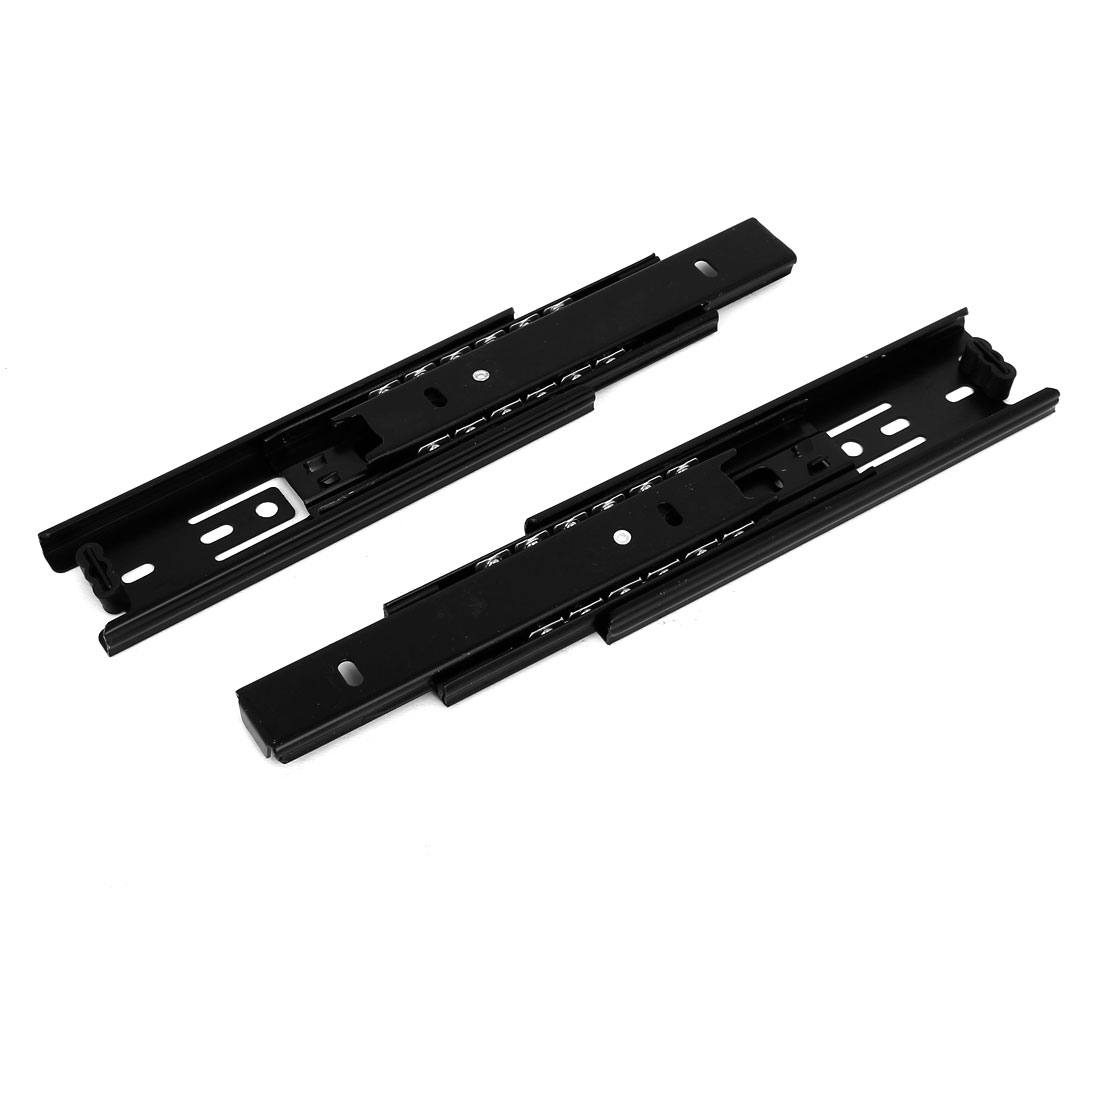 Uxcell Unique Bargains6'' Length 3-Section Ball Bearing Full Extension Drawer Slides Track Black 2pcs